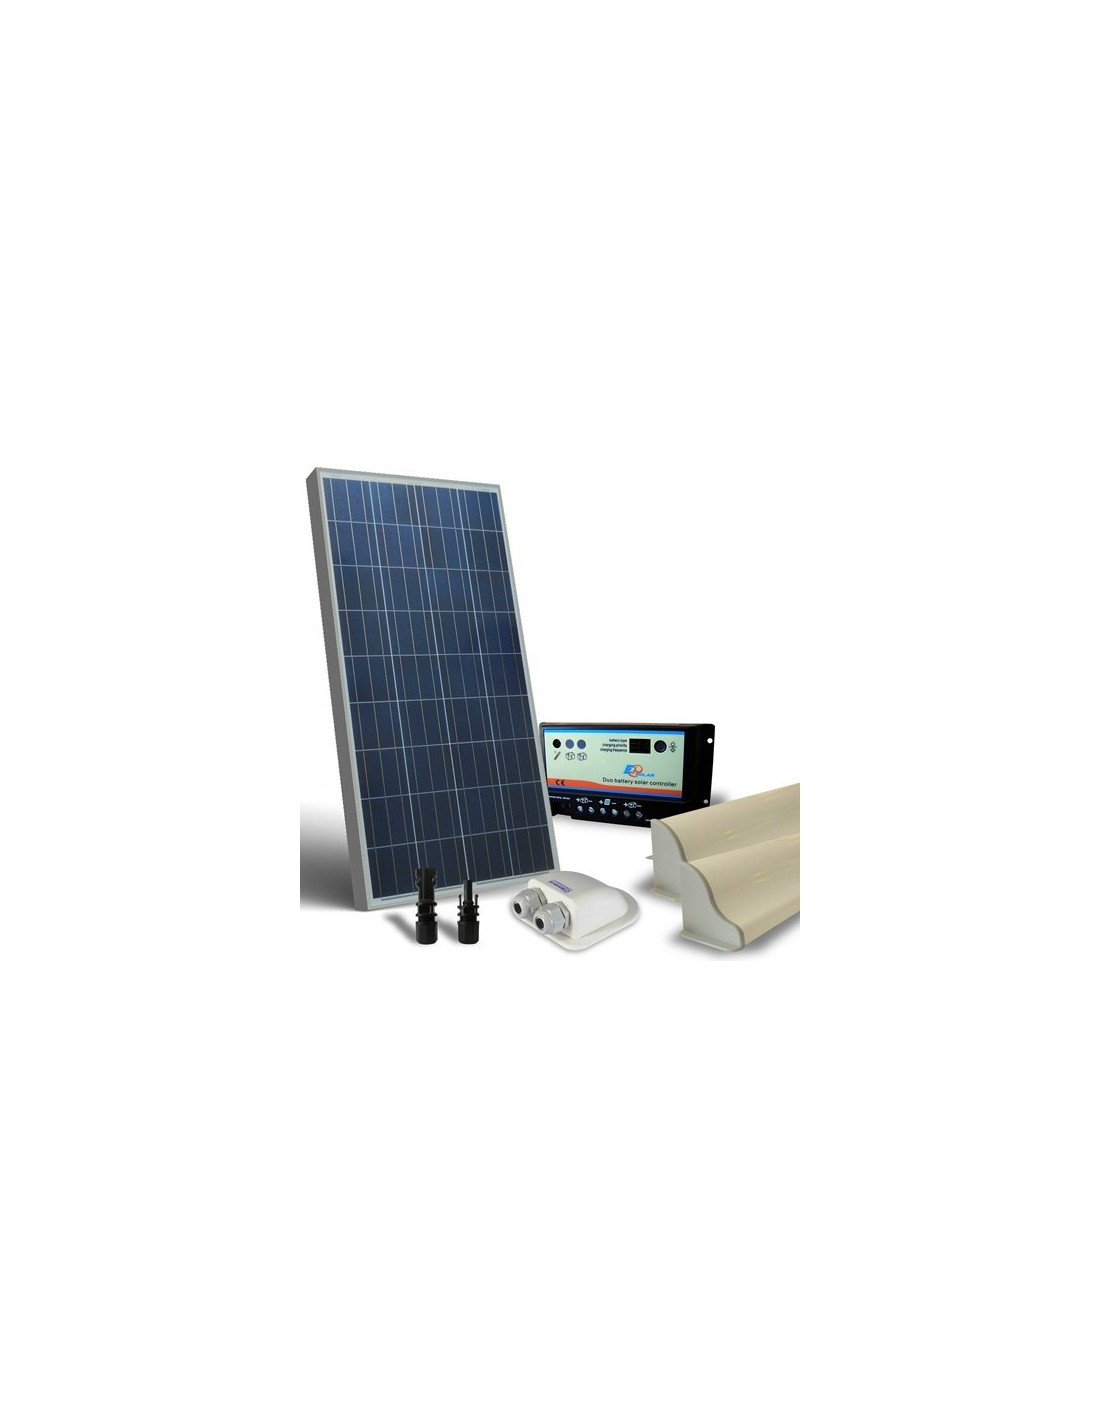 Kit solar camper 150w 12v base panel fotovoltaico for Kit solar fotovoltaico